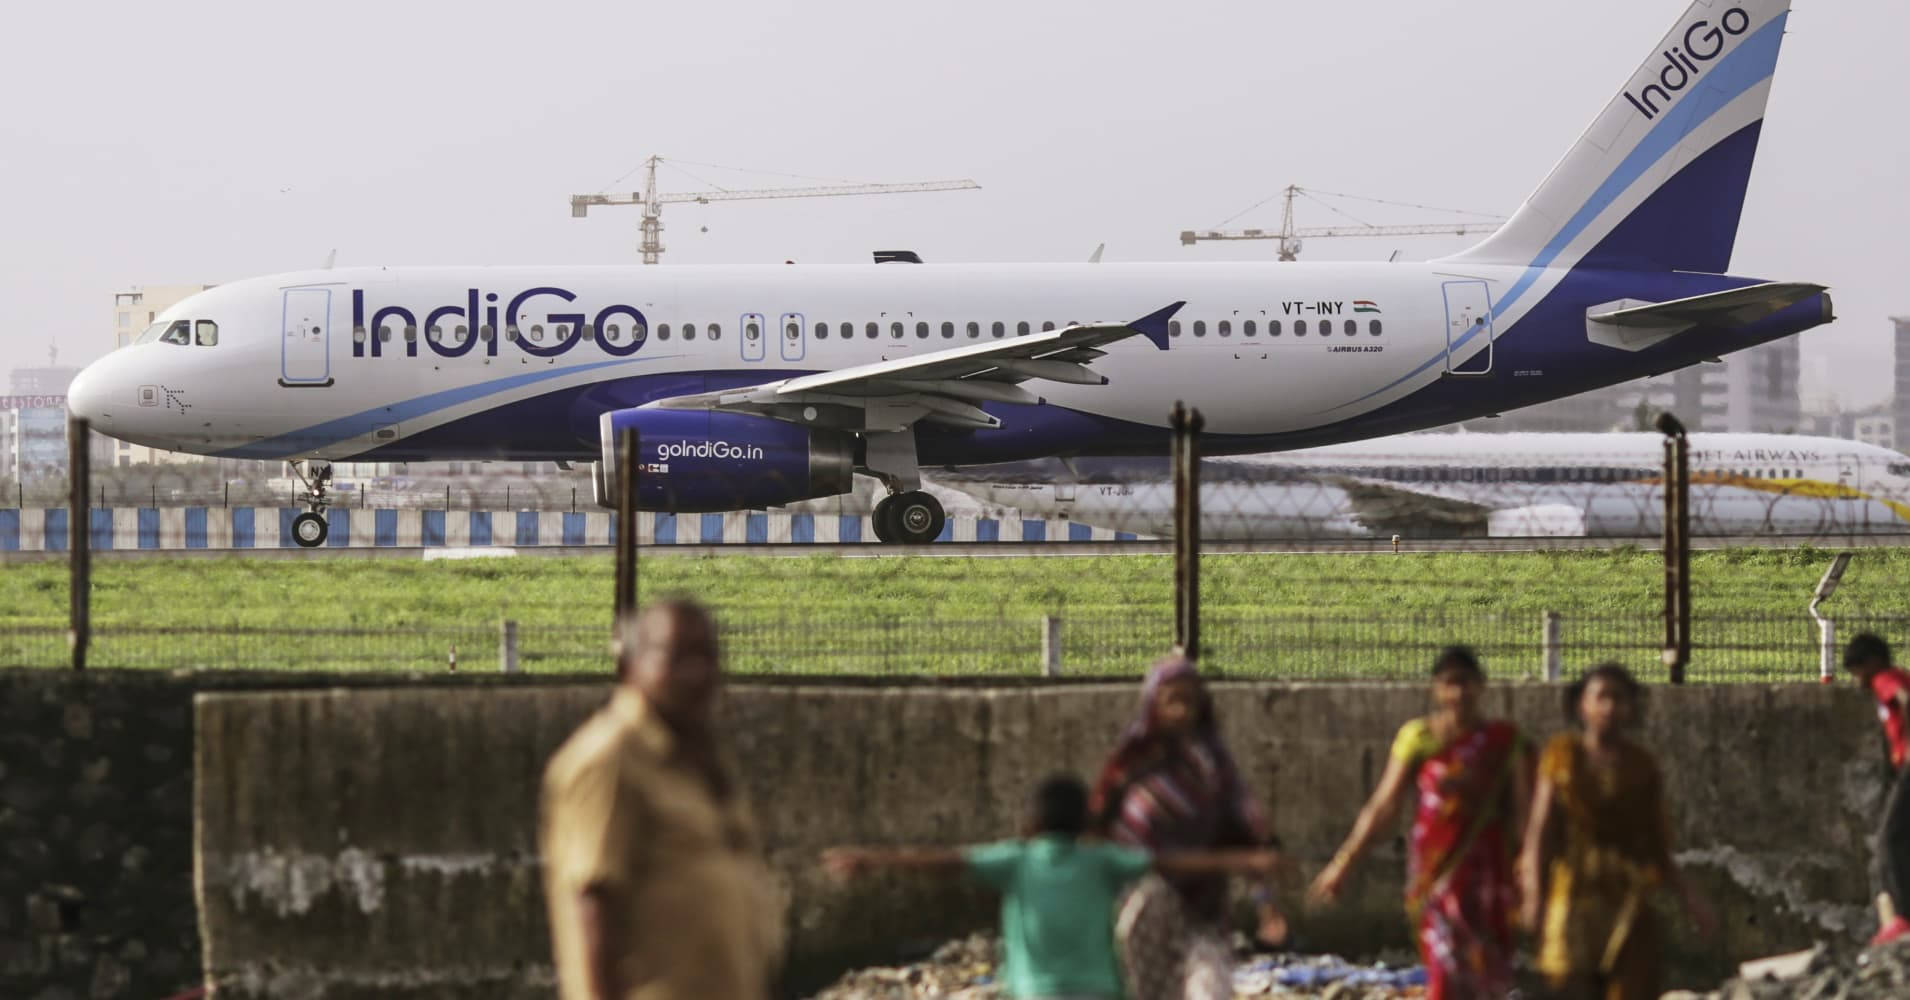 airline and indigo How can the answer be improved.